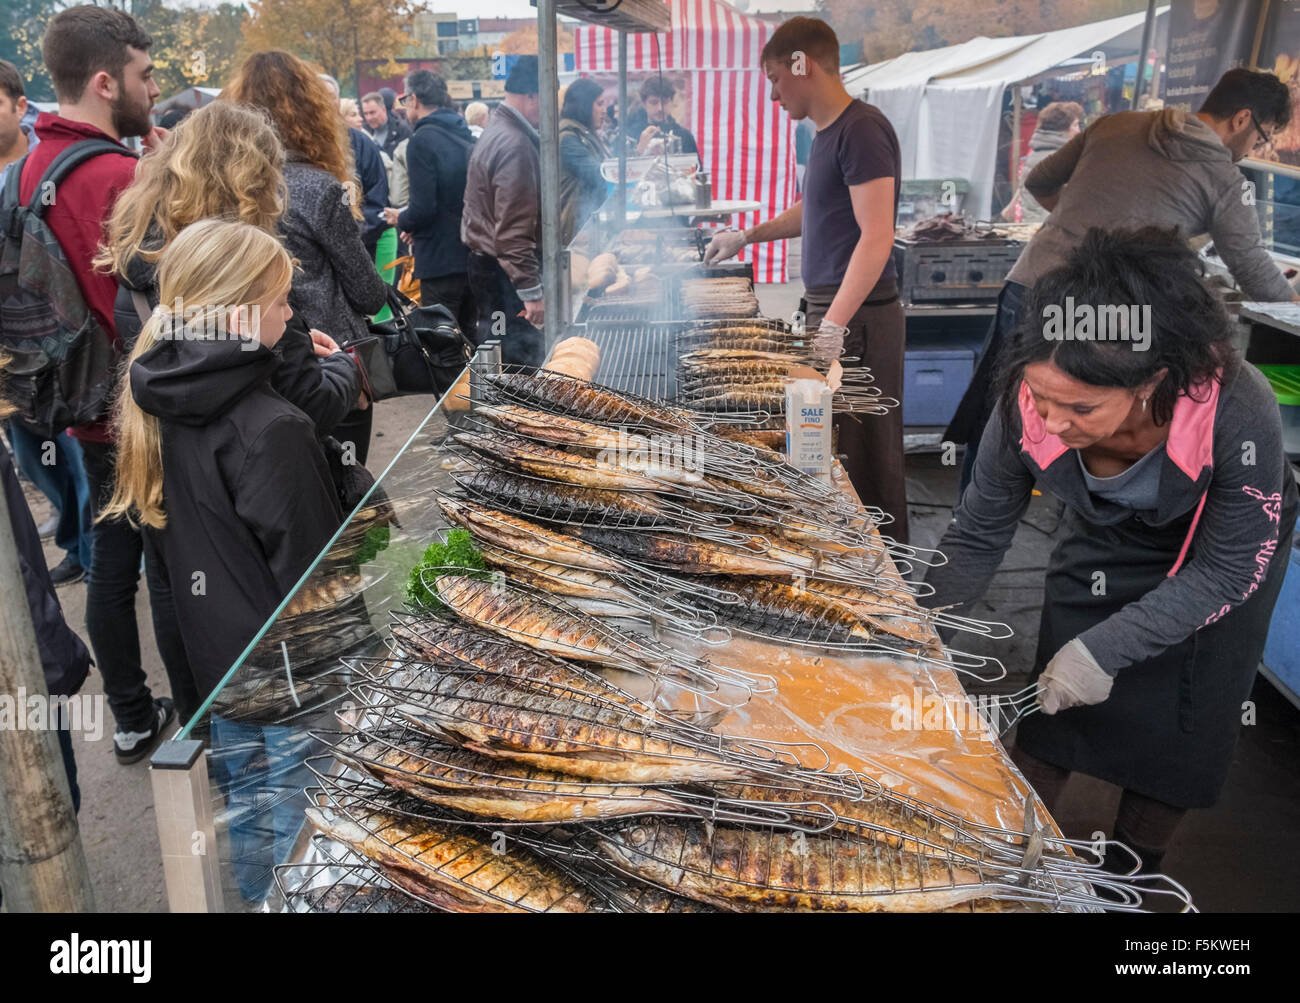 Fresh cooked fish food stall, Mauerpark Sunday fleamarket, Prenzlauer Berg, Berlin, Germany Stock Photo